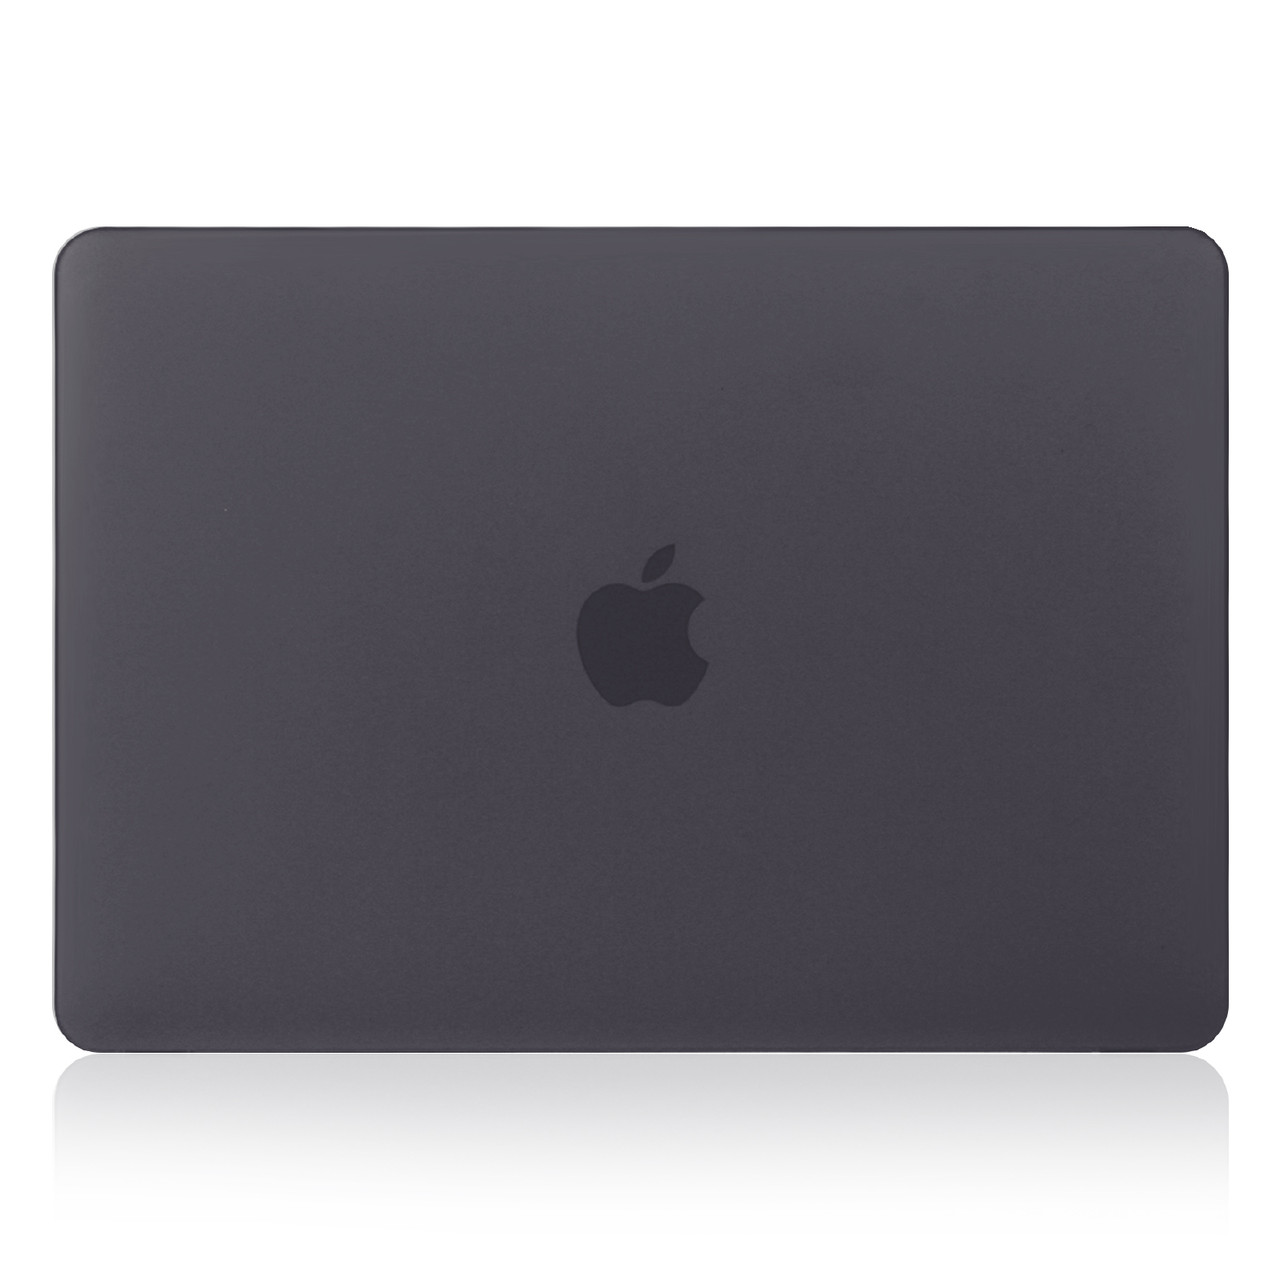 Накладка для ноутбука MacBook Pro 13 with/without Touch Bar Black